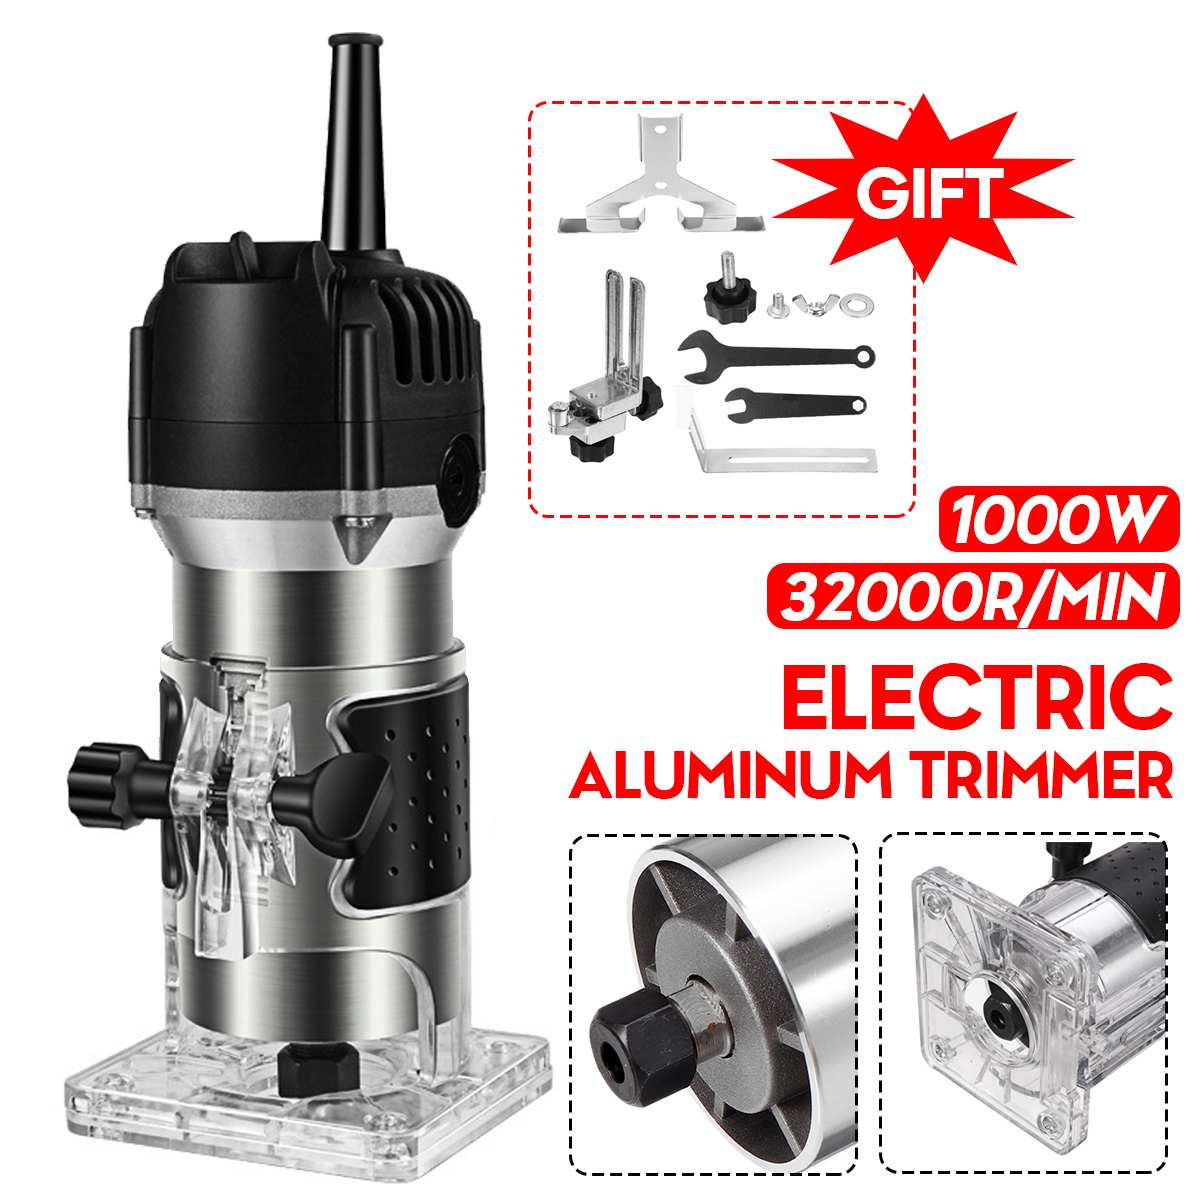 1000W 32000r Wood Router Tool Combo Kit Electric Woodworking Machines Power Carpentry Manual Trimmer Tools With Milling Cutter